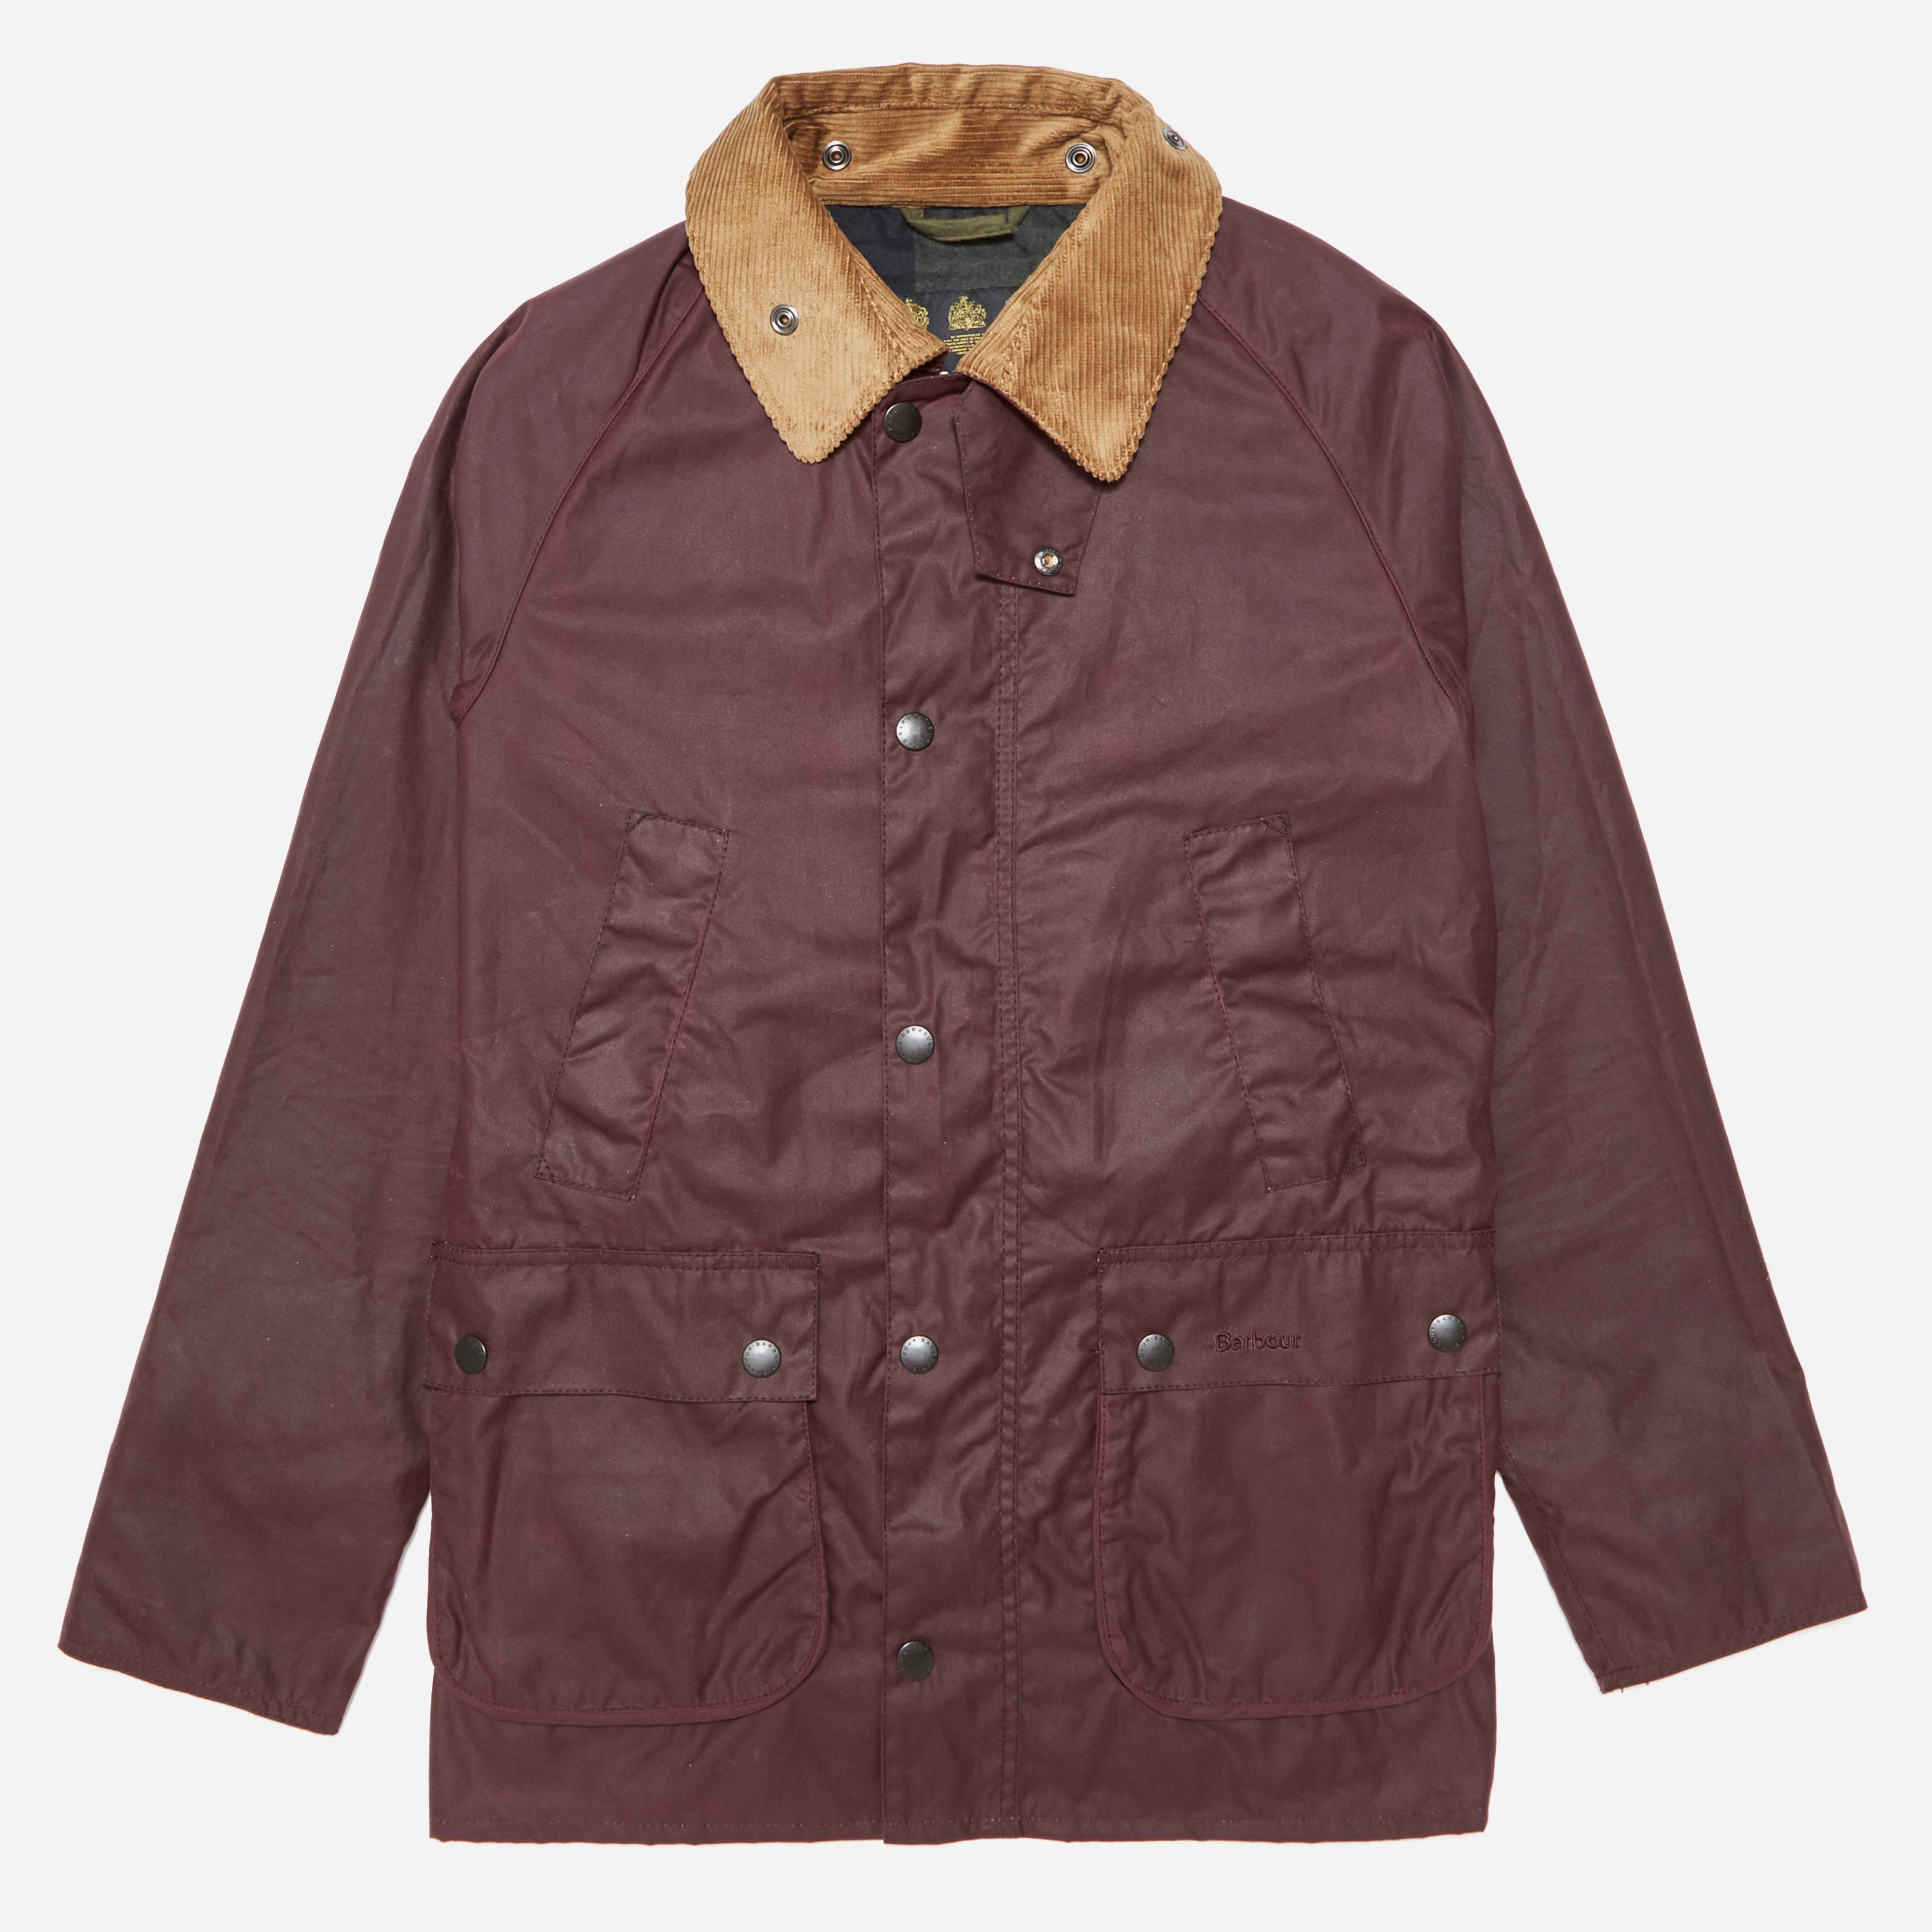 Barbour Made for Japan SL Bedale Wax Jacket